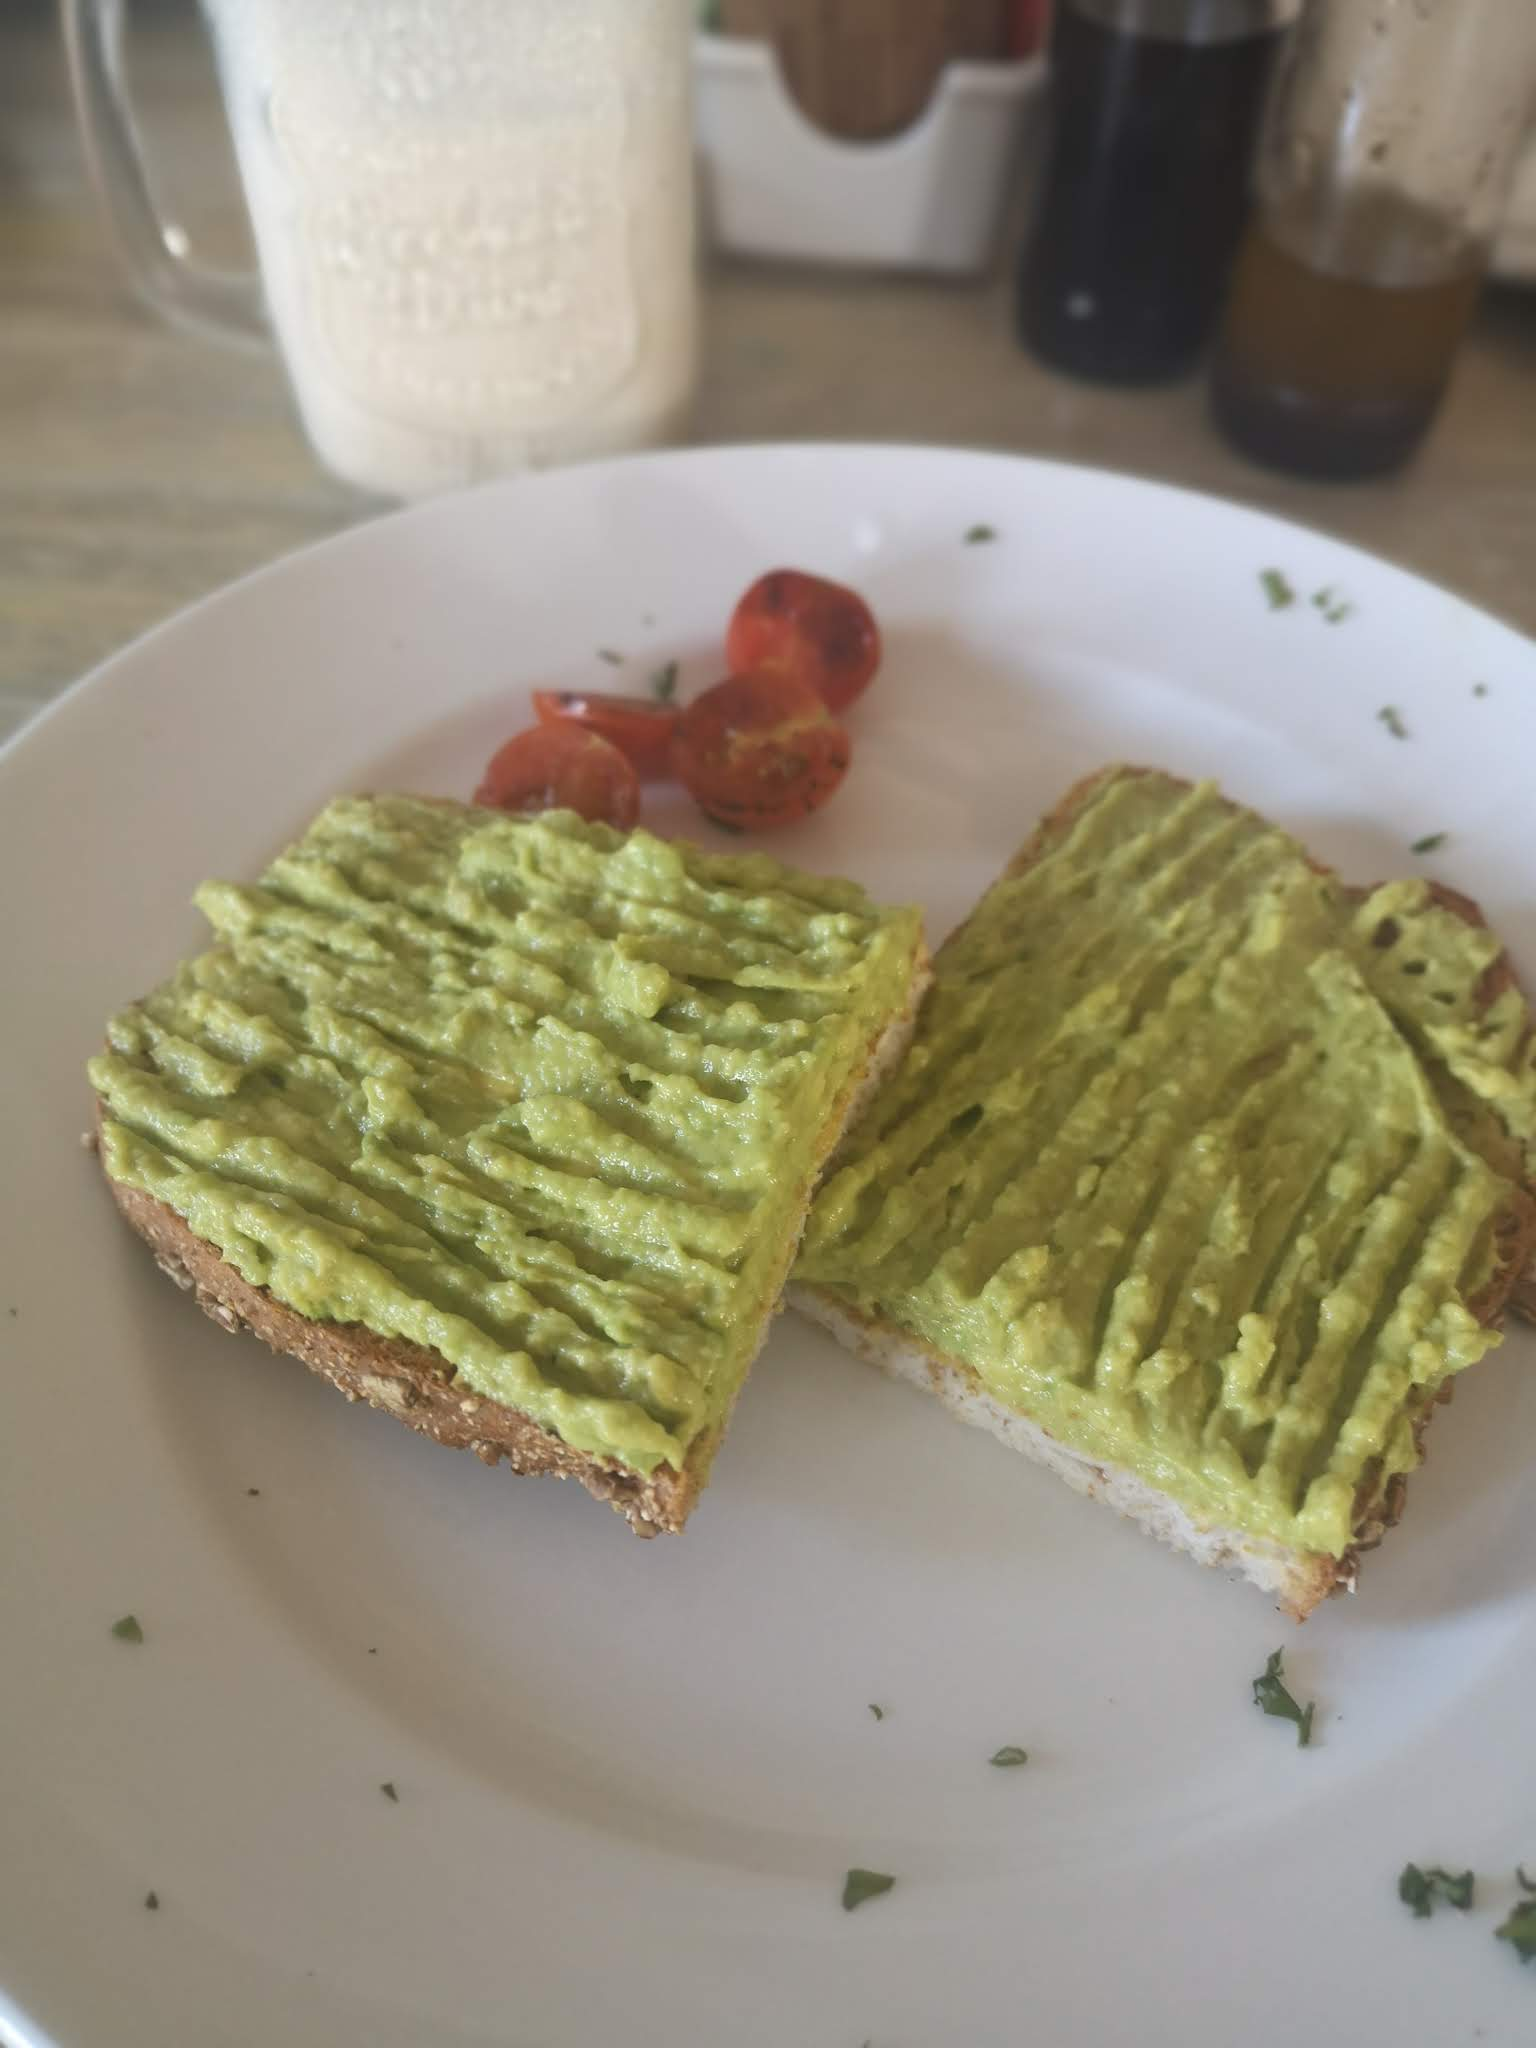 Avocado toast at Antique Cafe in Durban